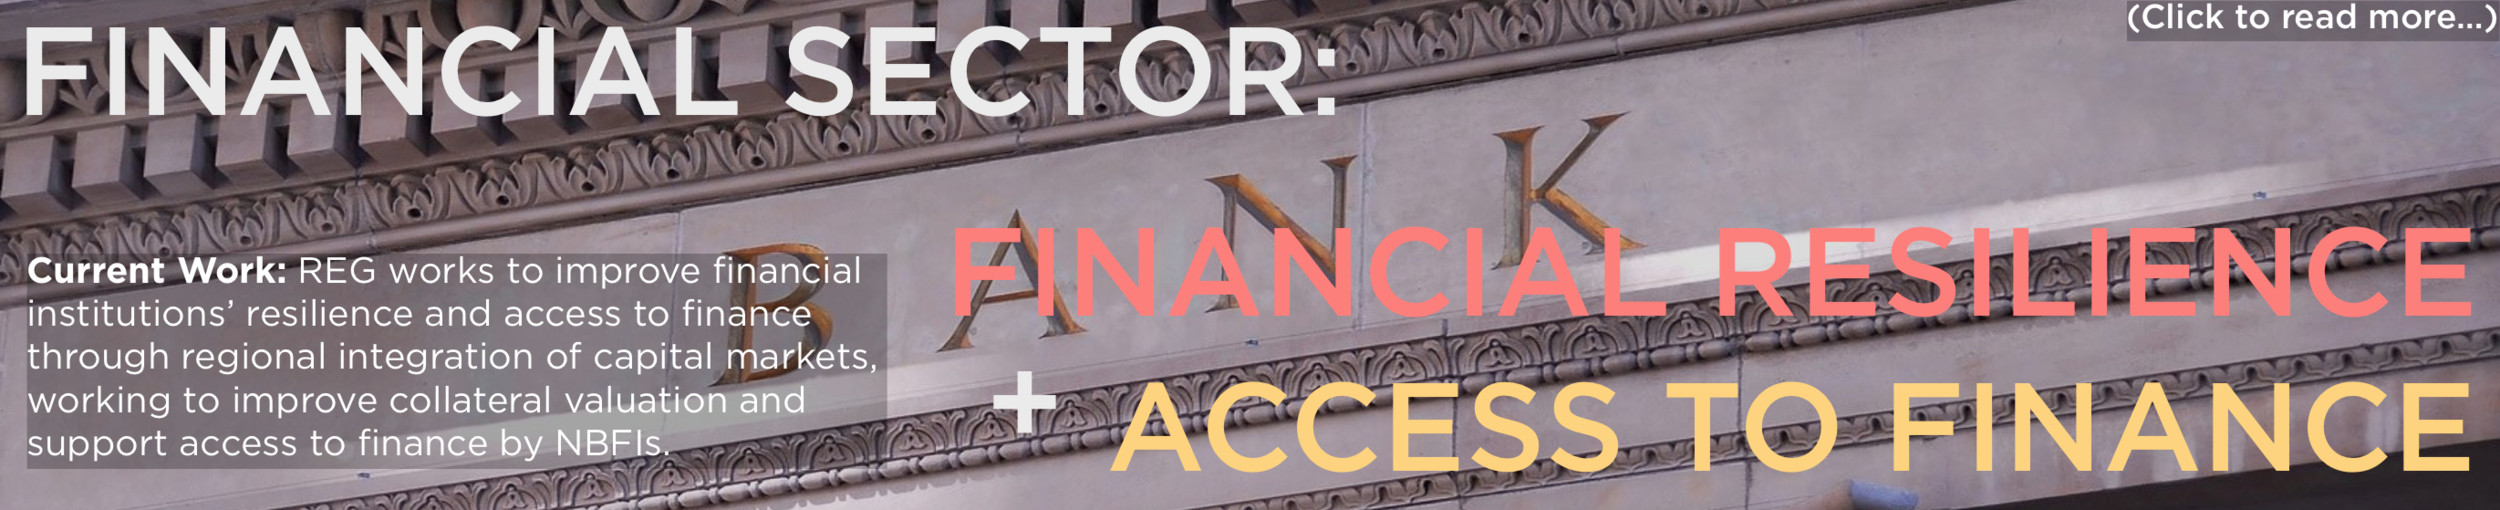 Banner - Finance-Access to Finance.png